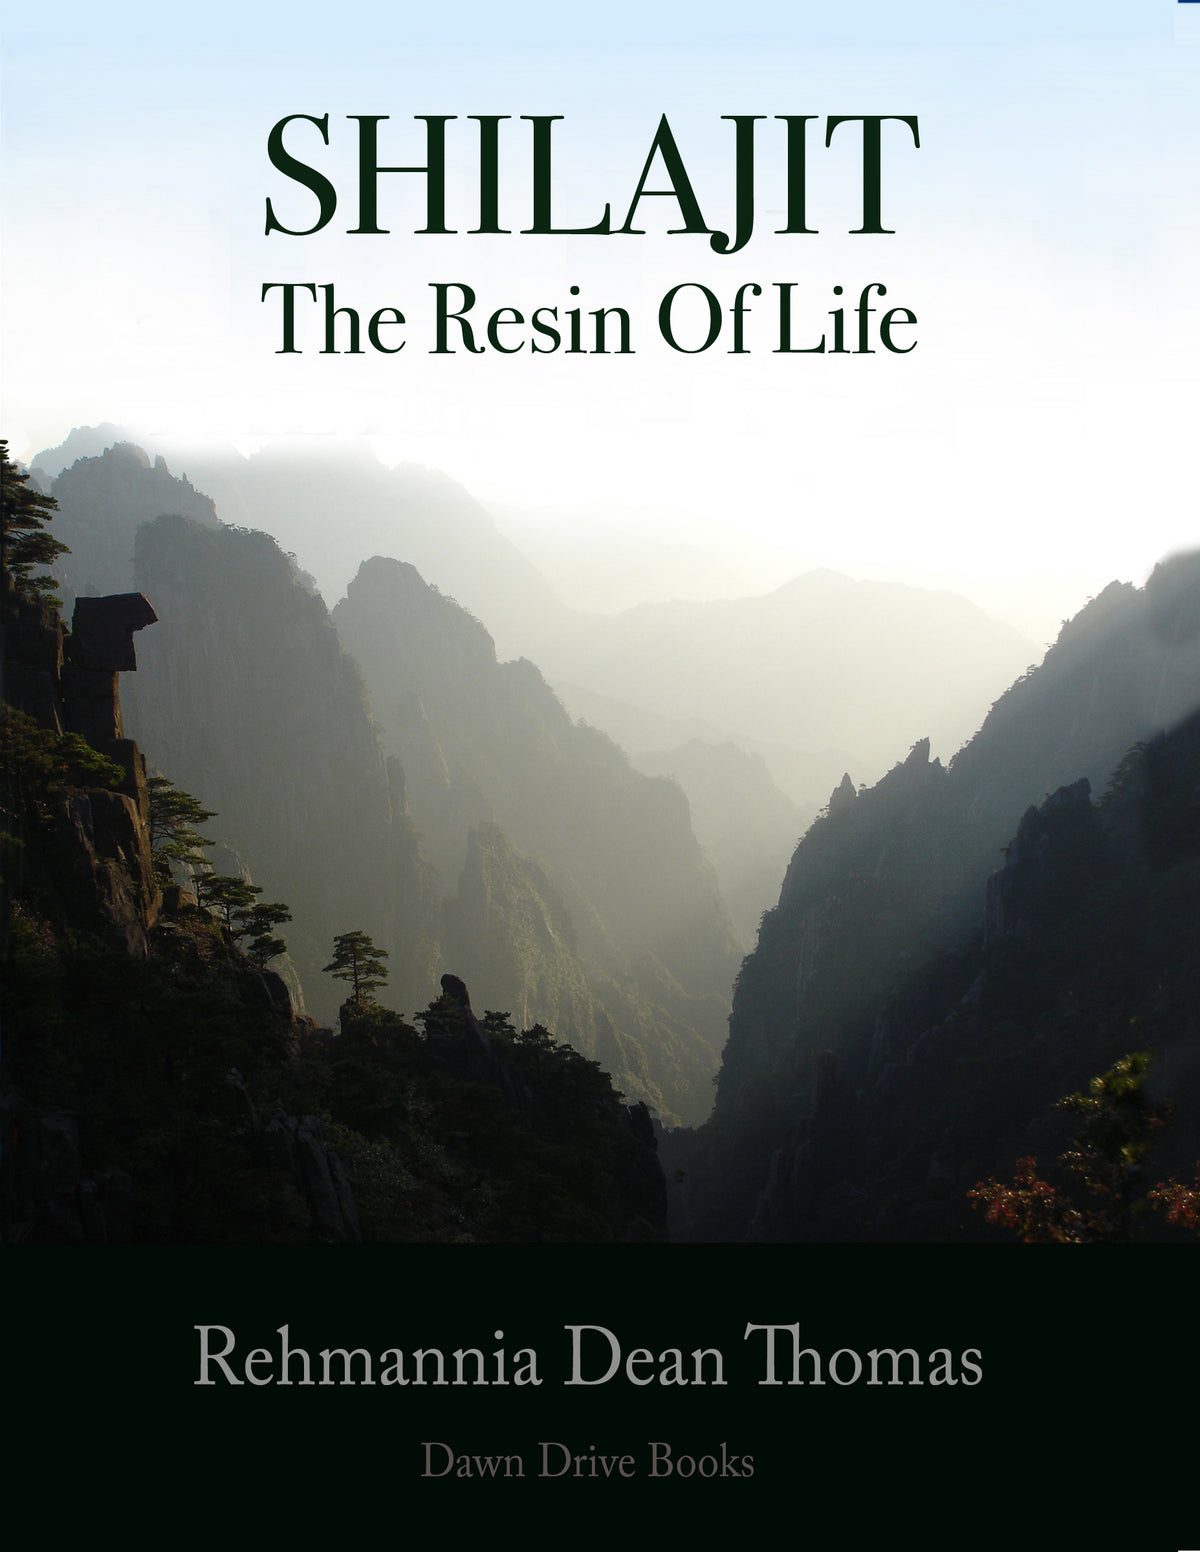 Shilajit - The Resin of Life - Rehmannia Dean Thomas